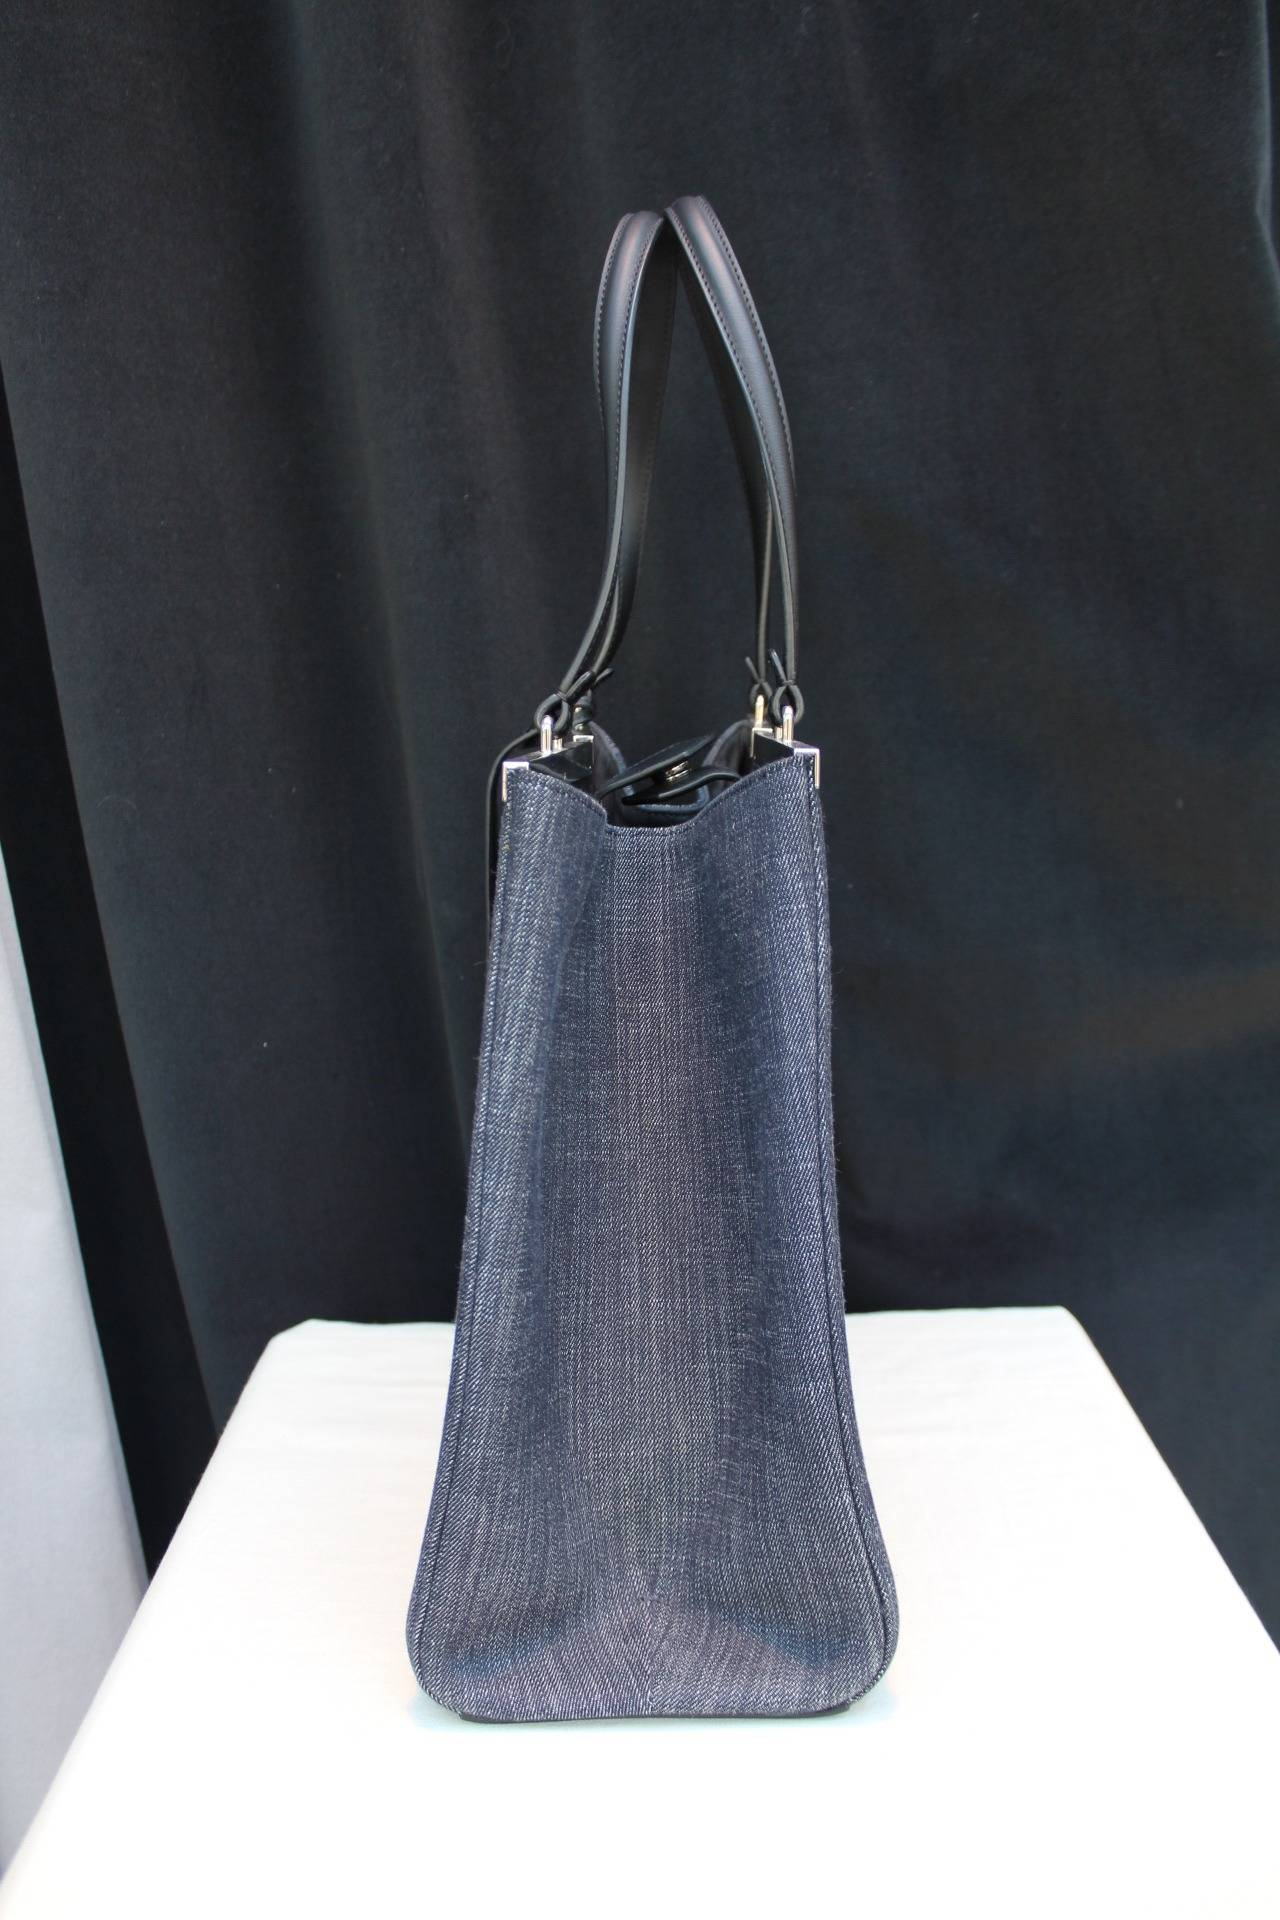 fc552b1ab240 2014 Fendi Denim 3Jours Tote Bag For Sale. Large Fendi ink blue 3Jours denim  shopping bag with black calfskin lining and customizable name tag